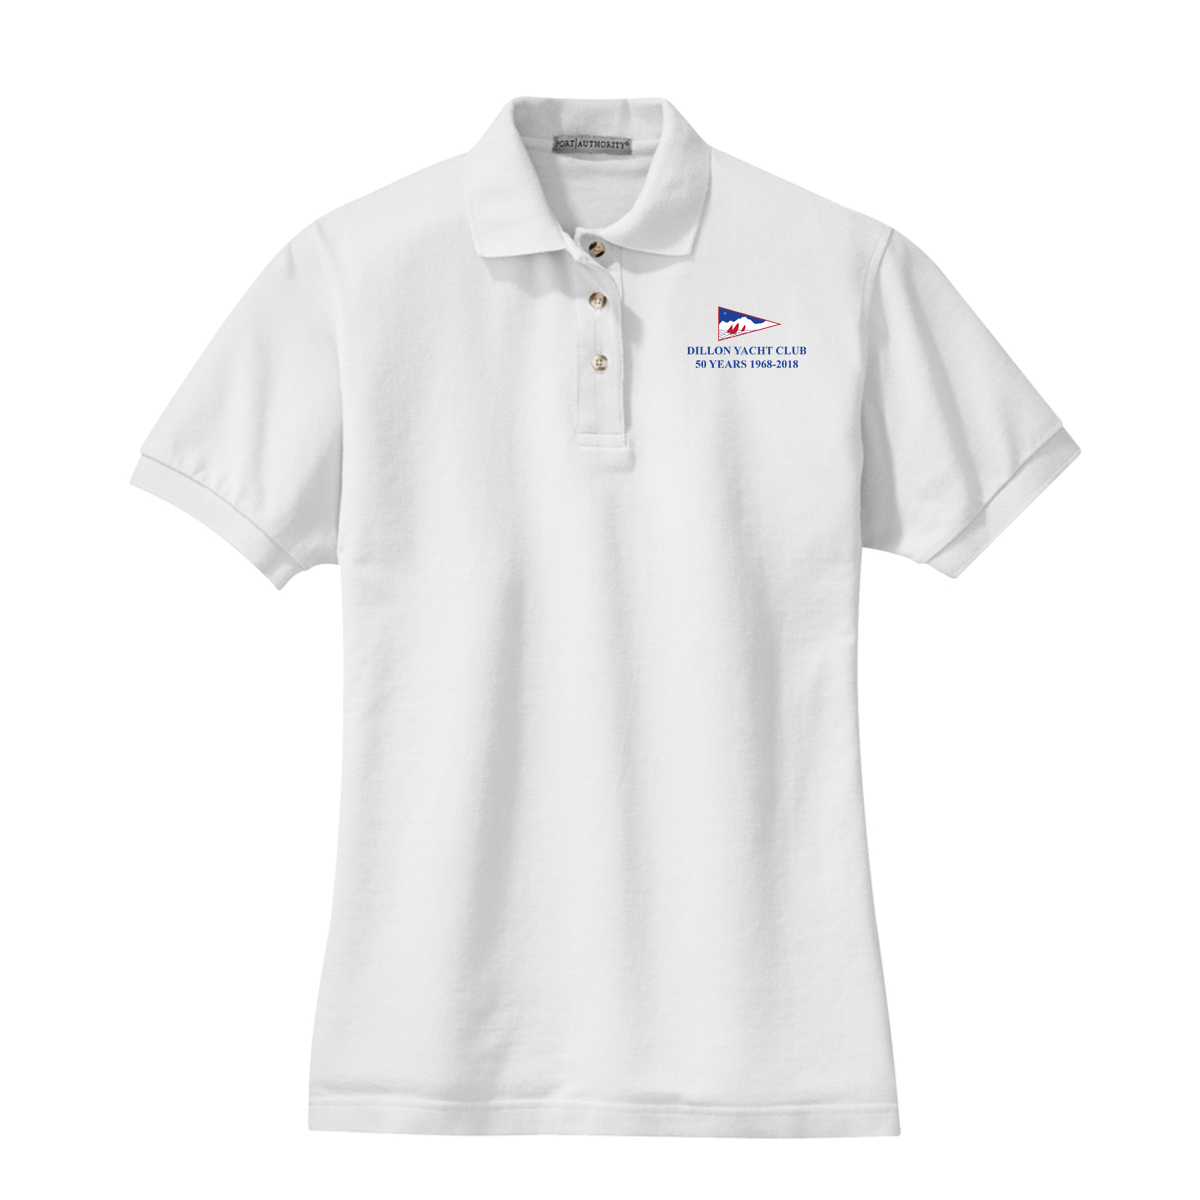 DILLON YACHT CLUB 50YR- W'S COTTON POLO